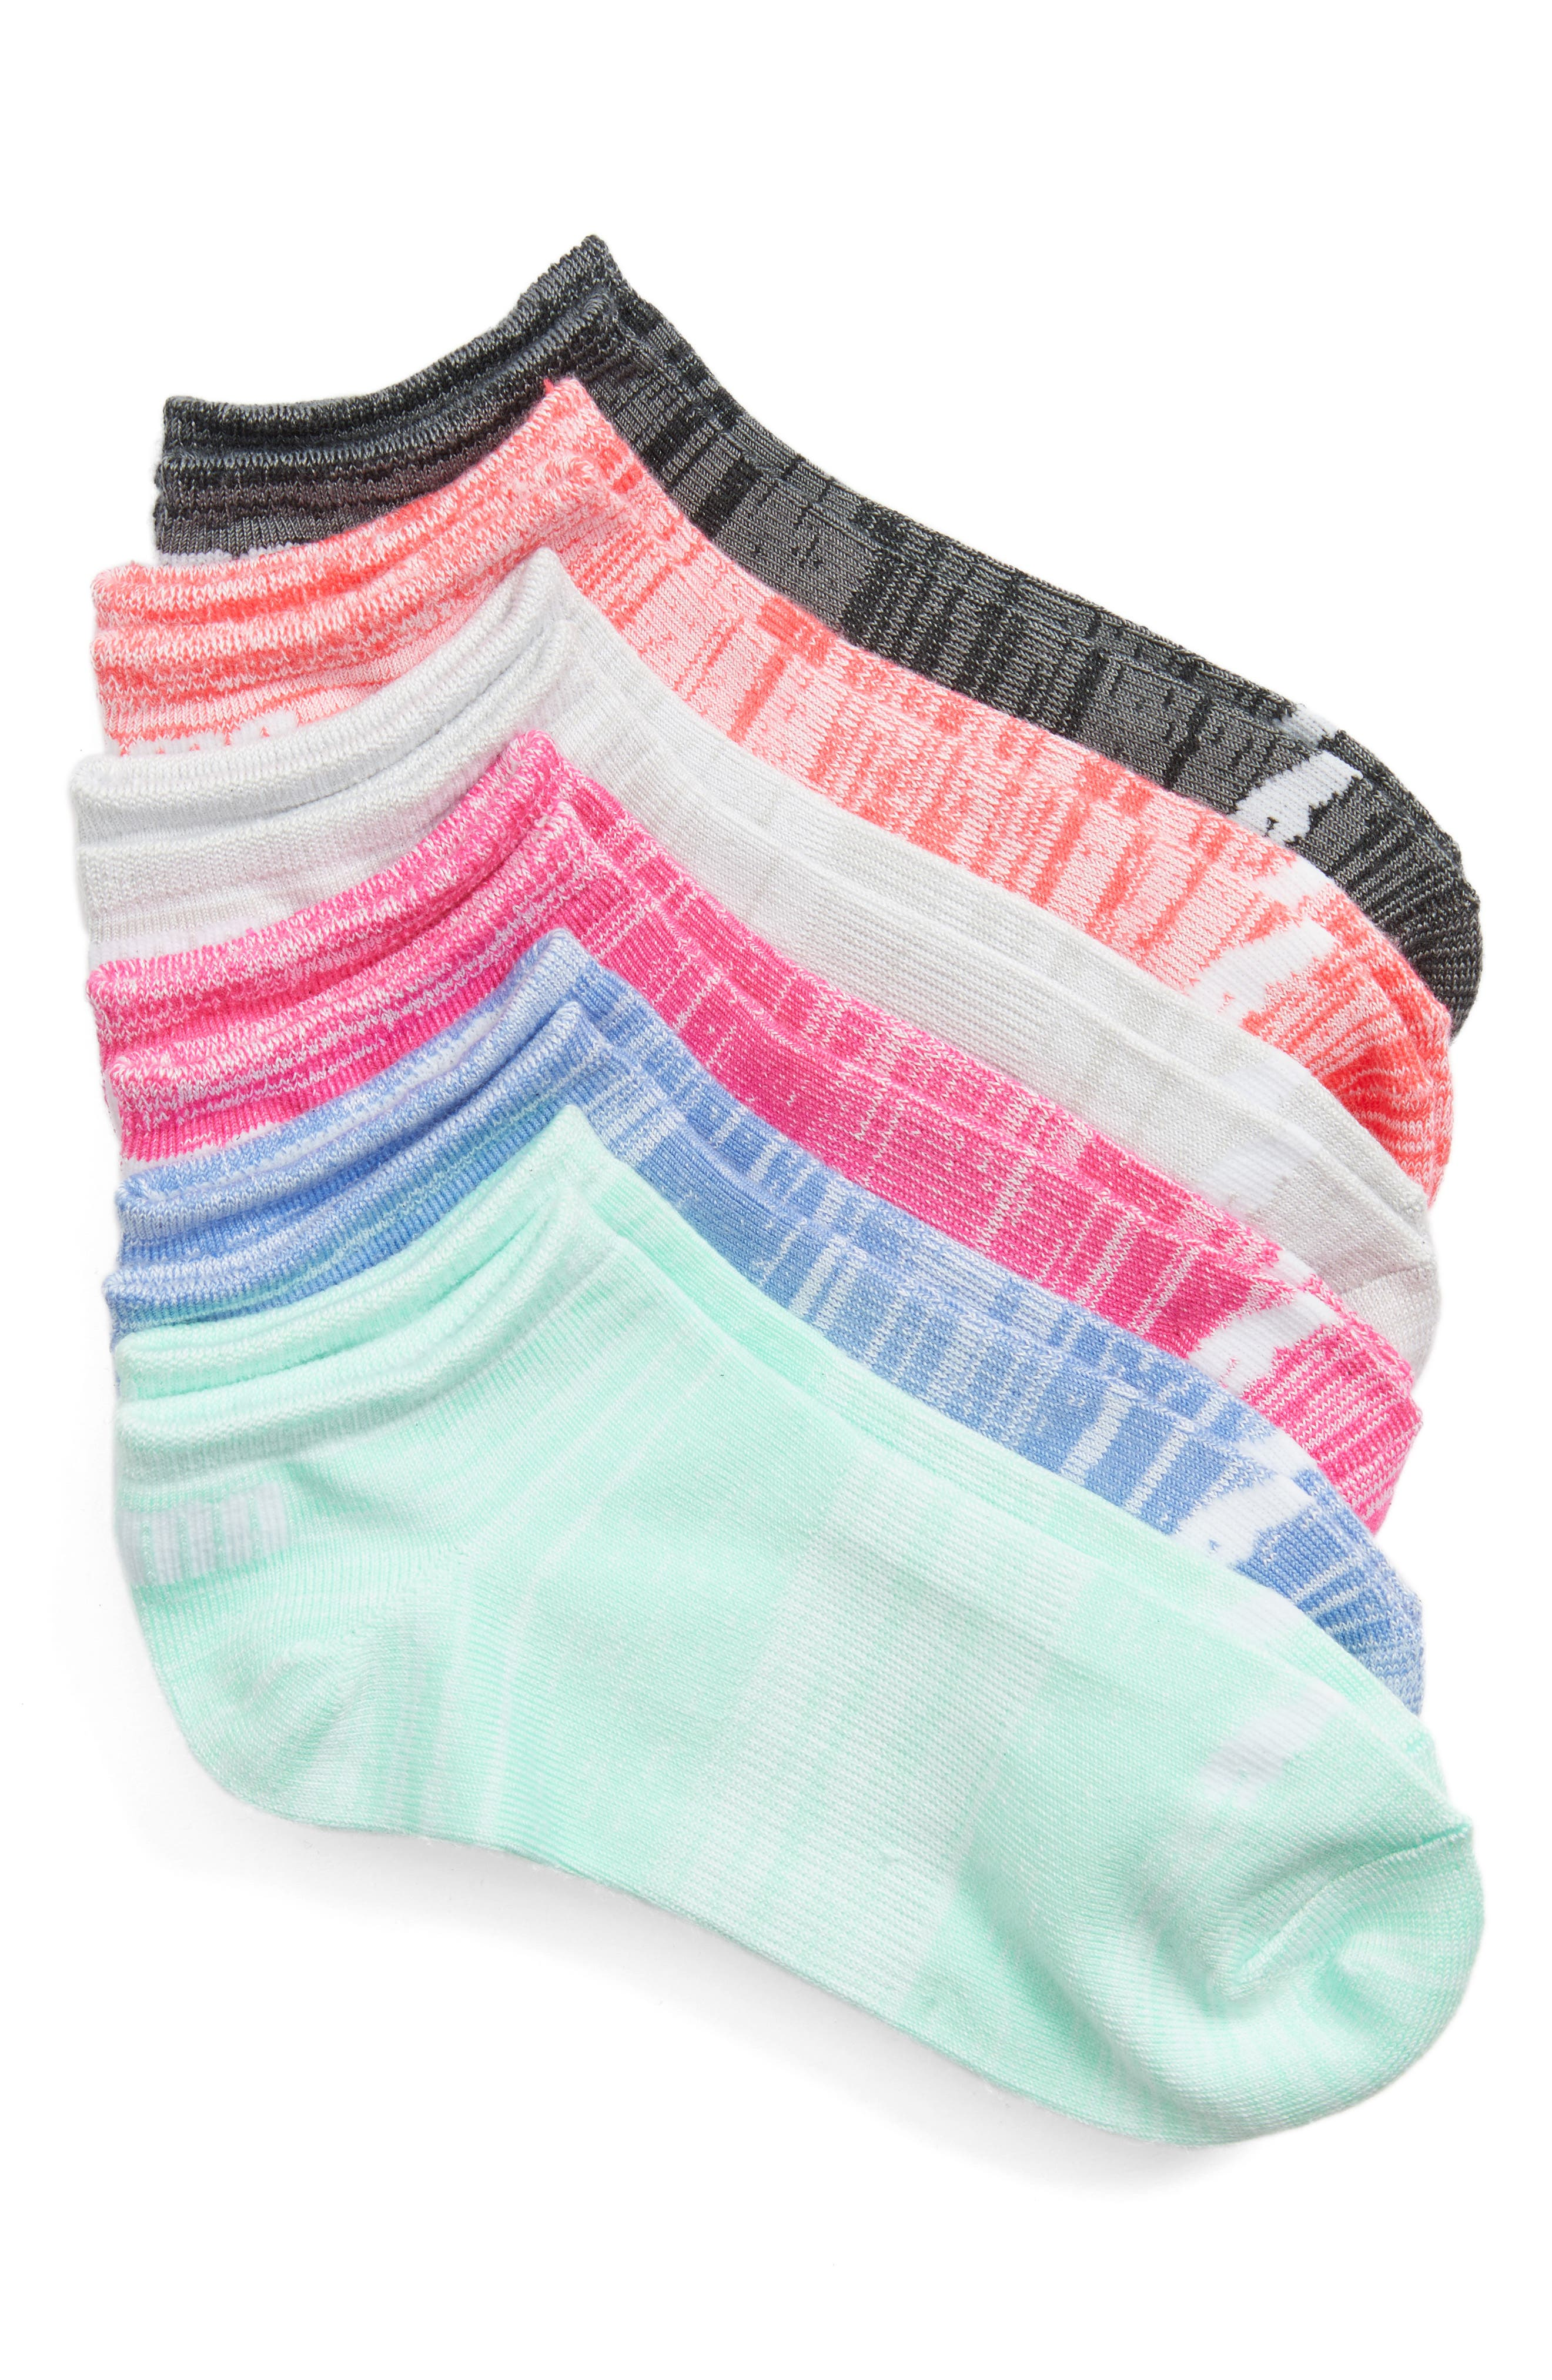 6-Pack No-Show Socks,                         Main,                         color, Pink Multi